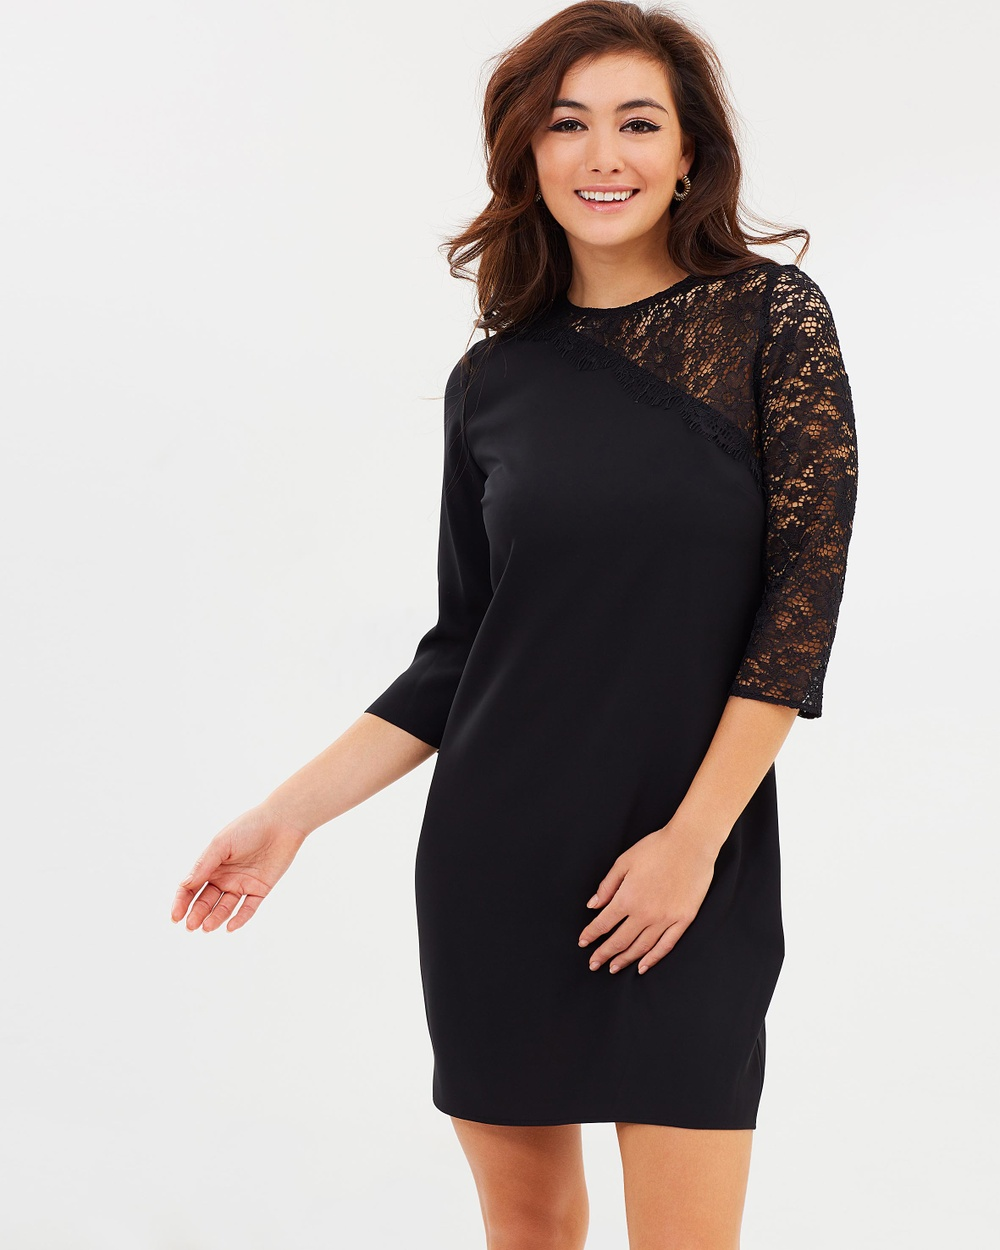 Dorothy Perkins Lace Asymmetric Shoulder Shift Dress Dresses Black Lace Asymmetric Shoulder Shift Dress